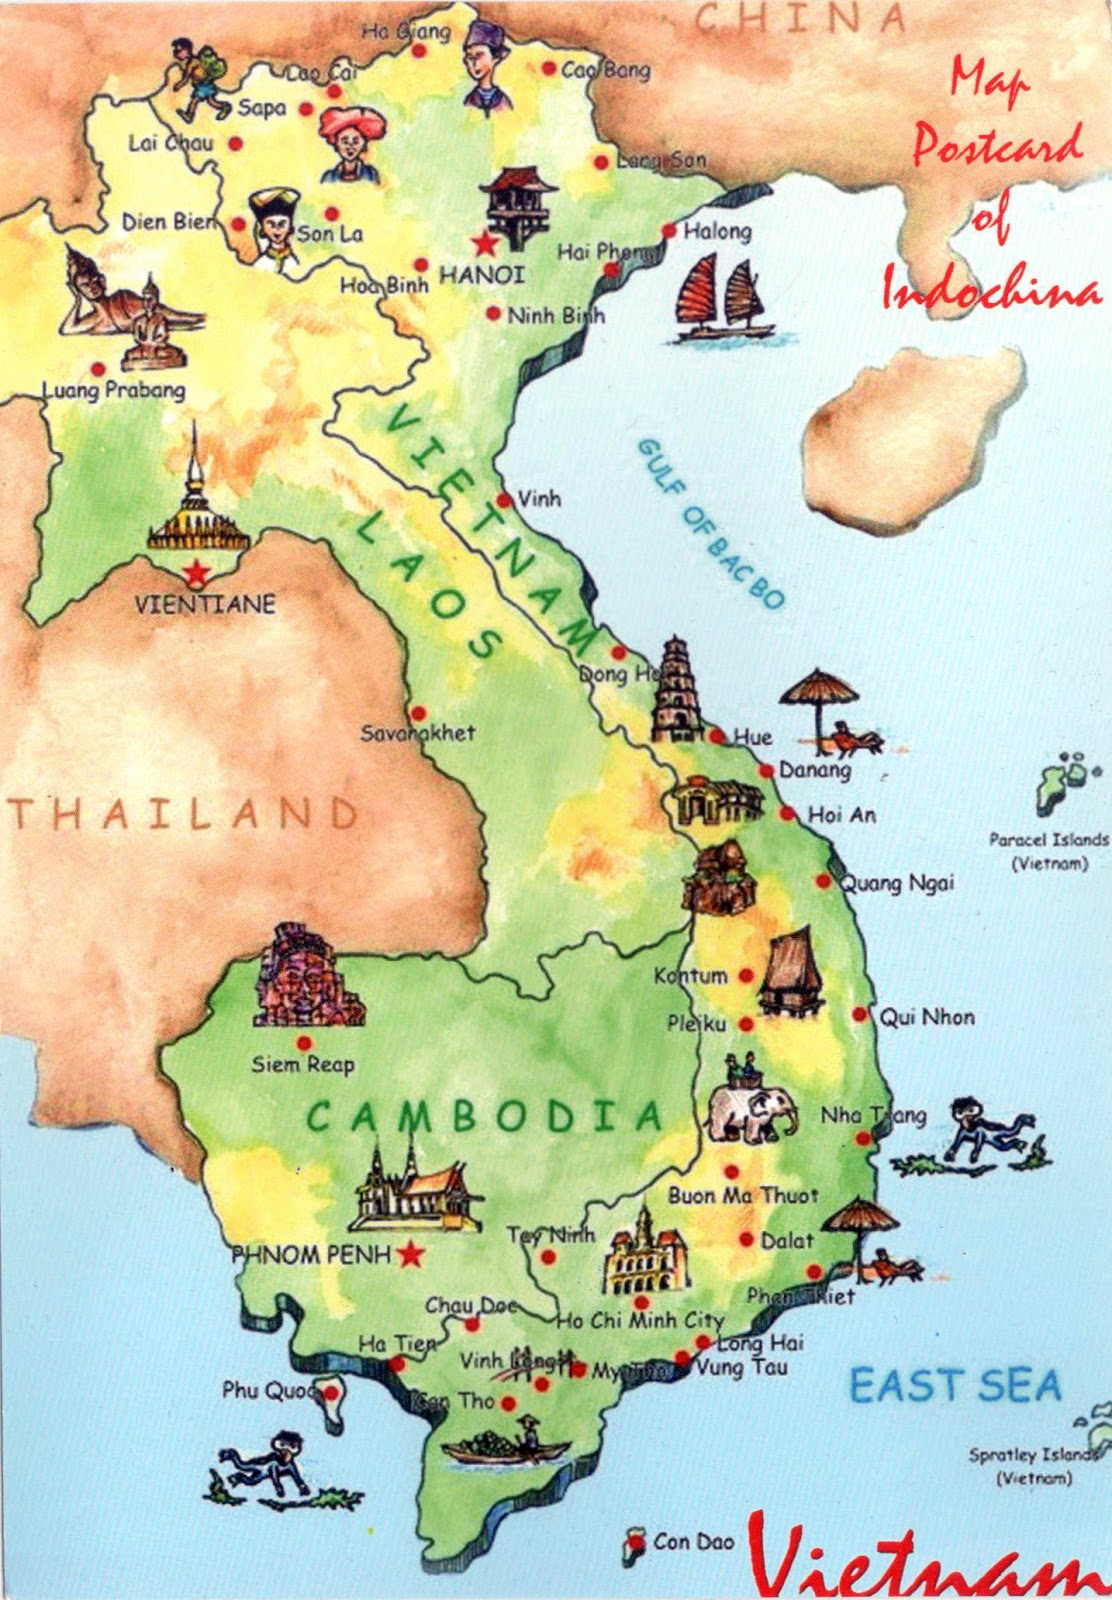 World Come To My Home 3194 Vietnam The Map Of The Country